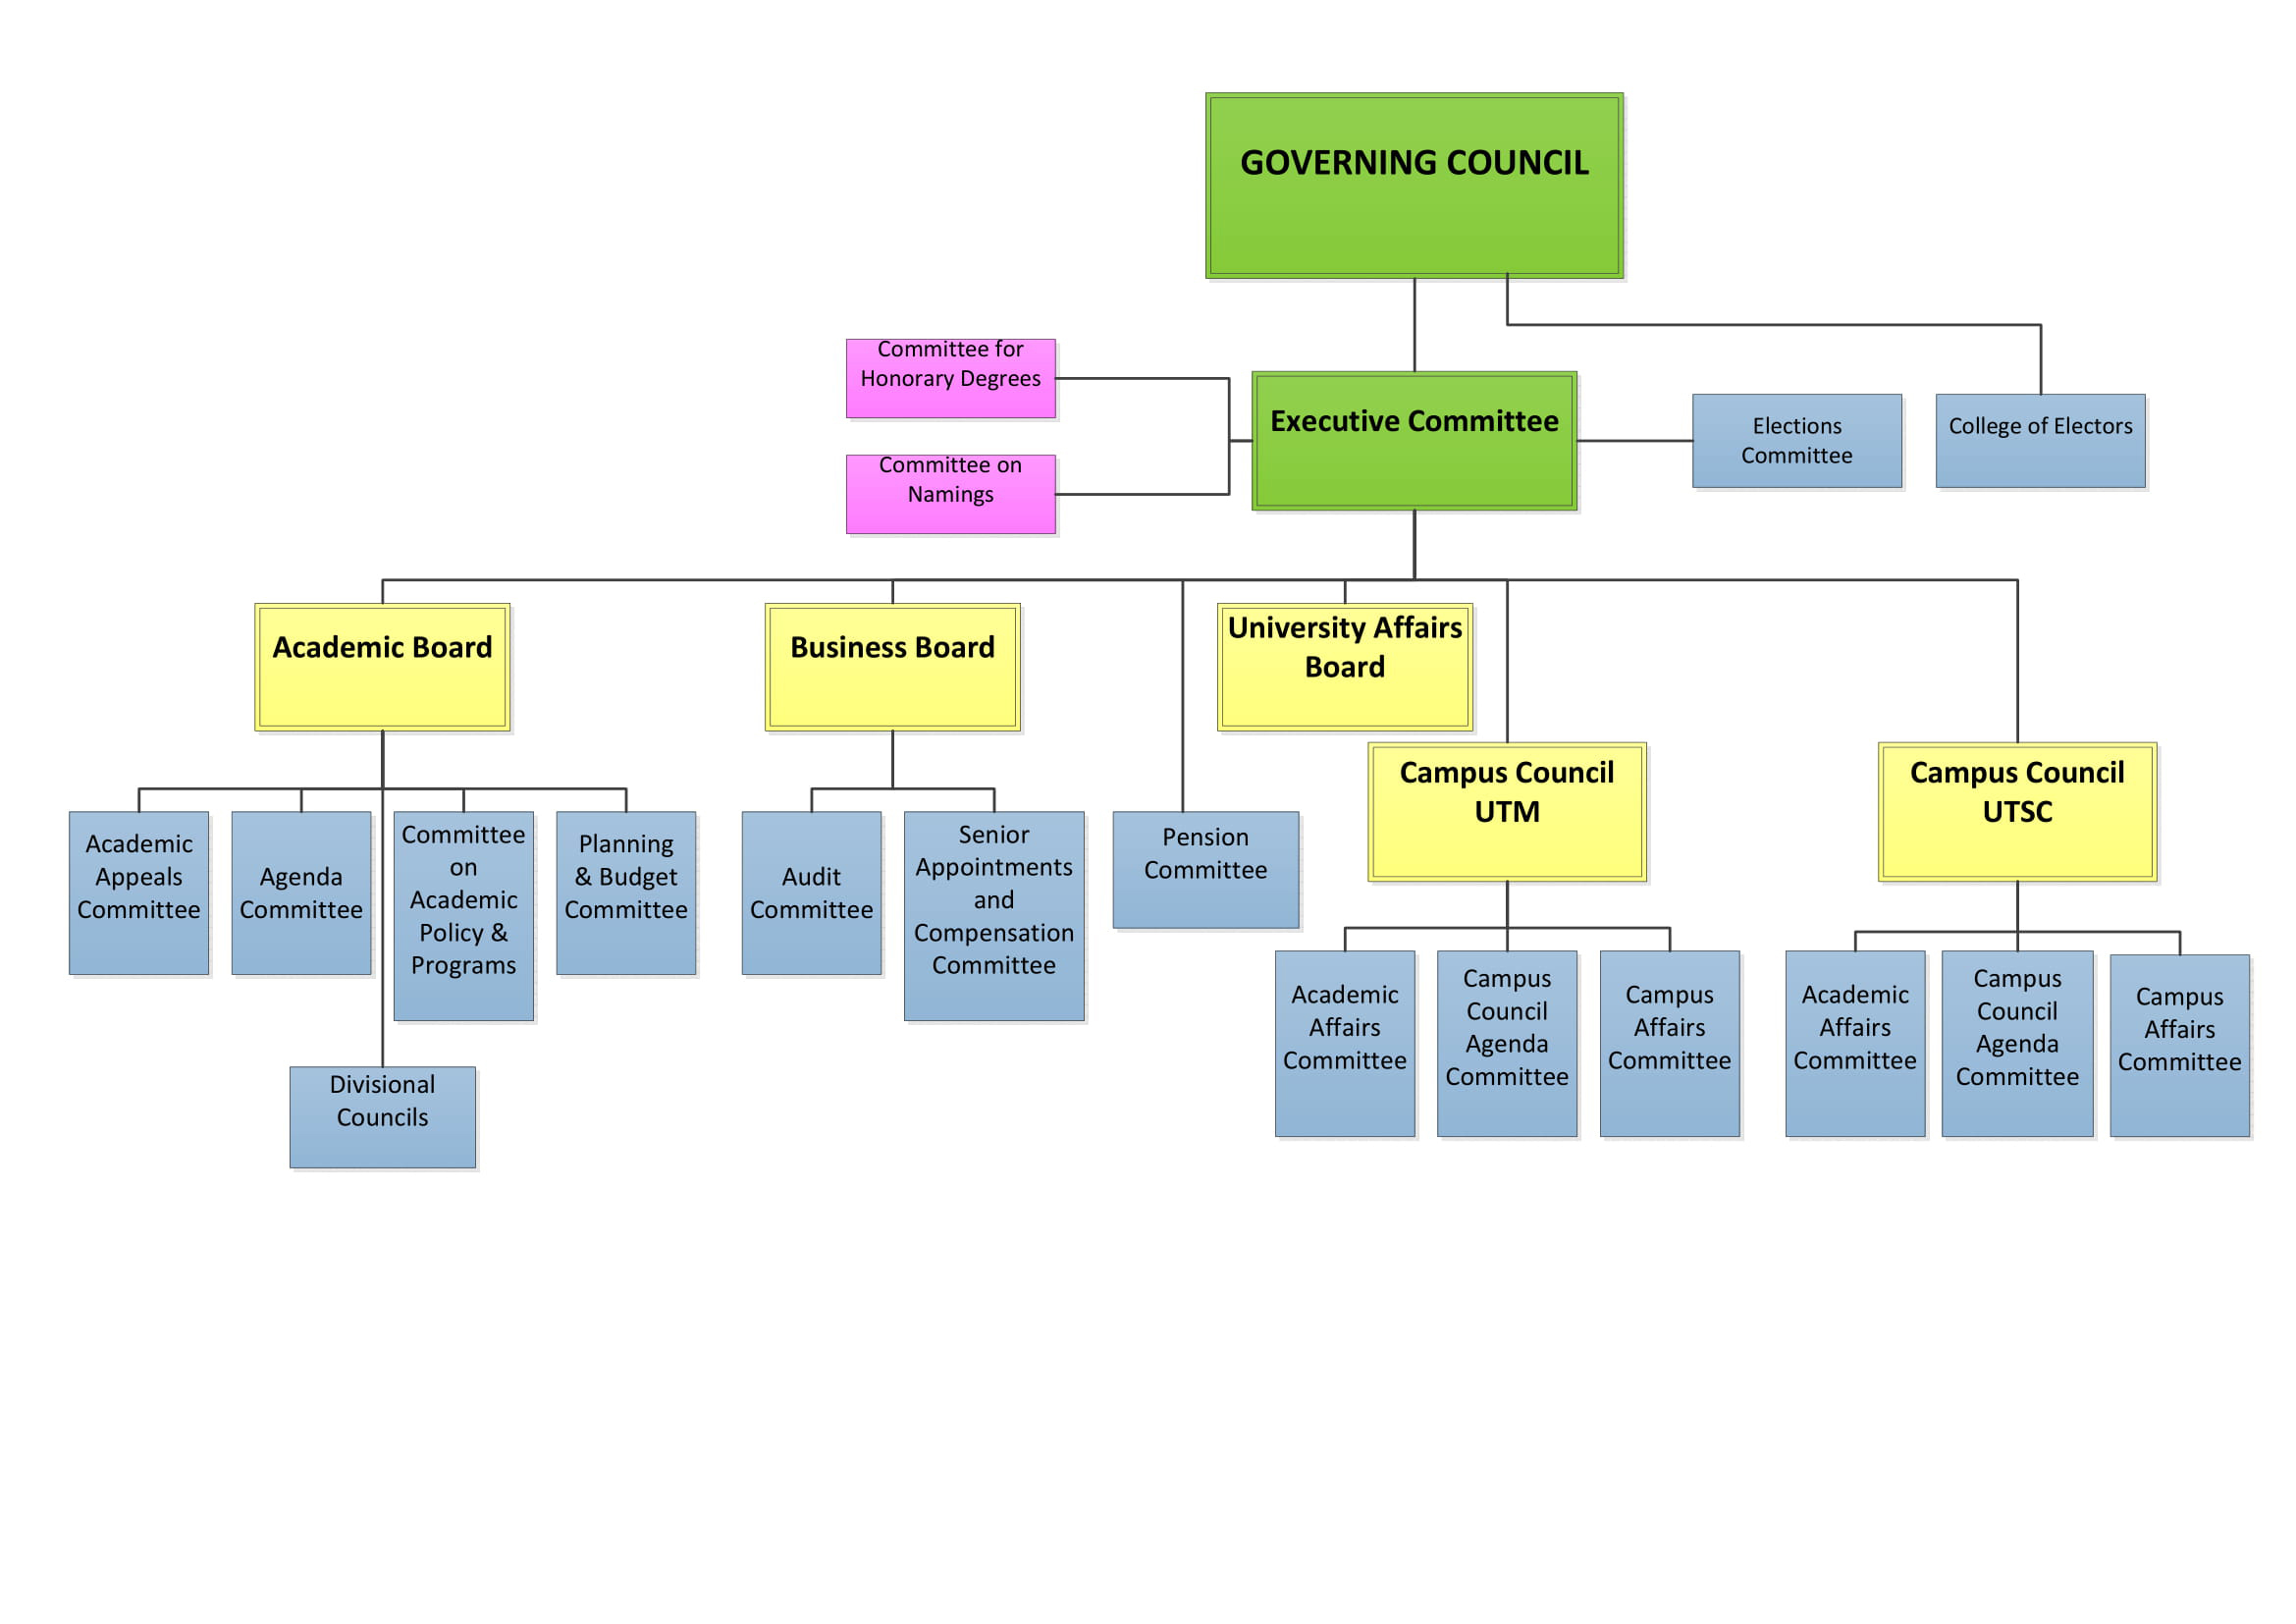 The Governing Council and its governance bodies.